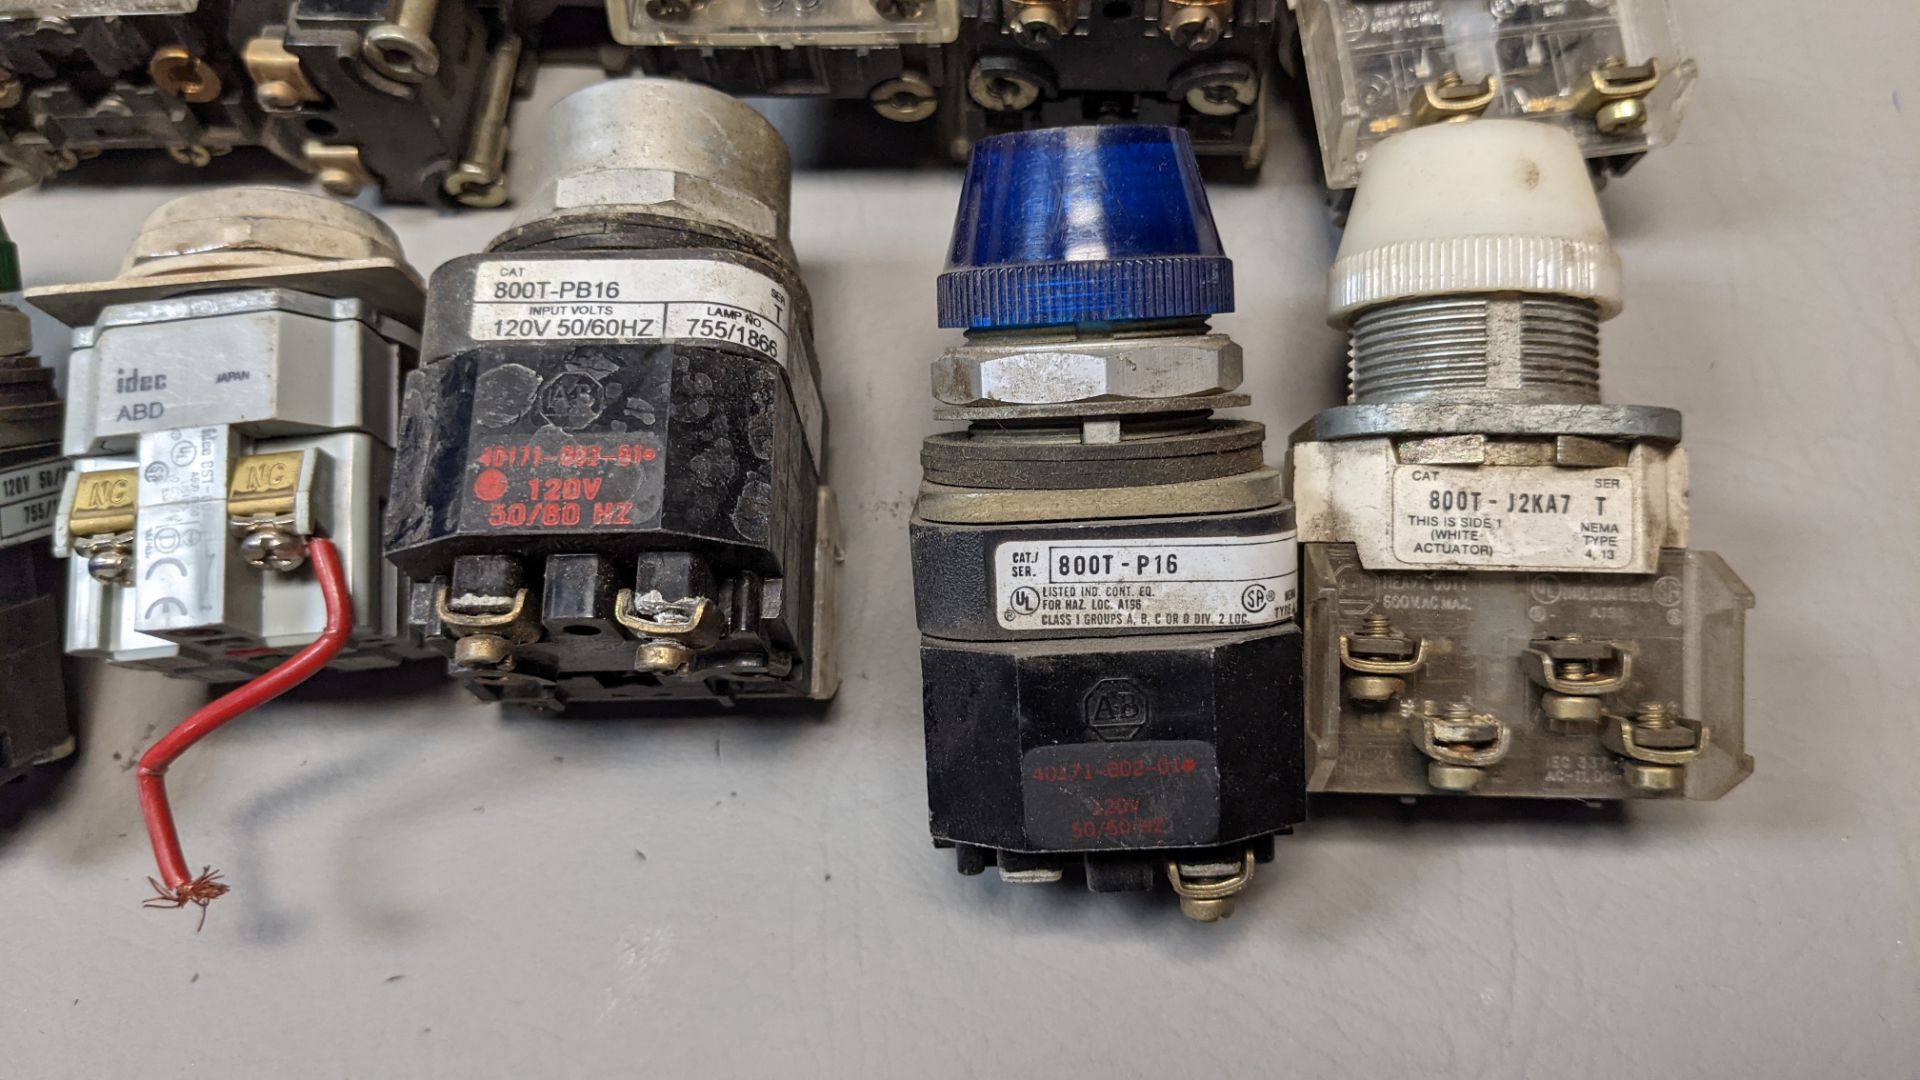 LOT OF PUSHBUTTONS, PILOT LIGHTS, SELECTOR SWITCHES - Image 2 of 7